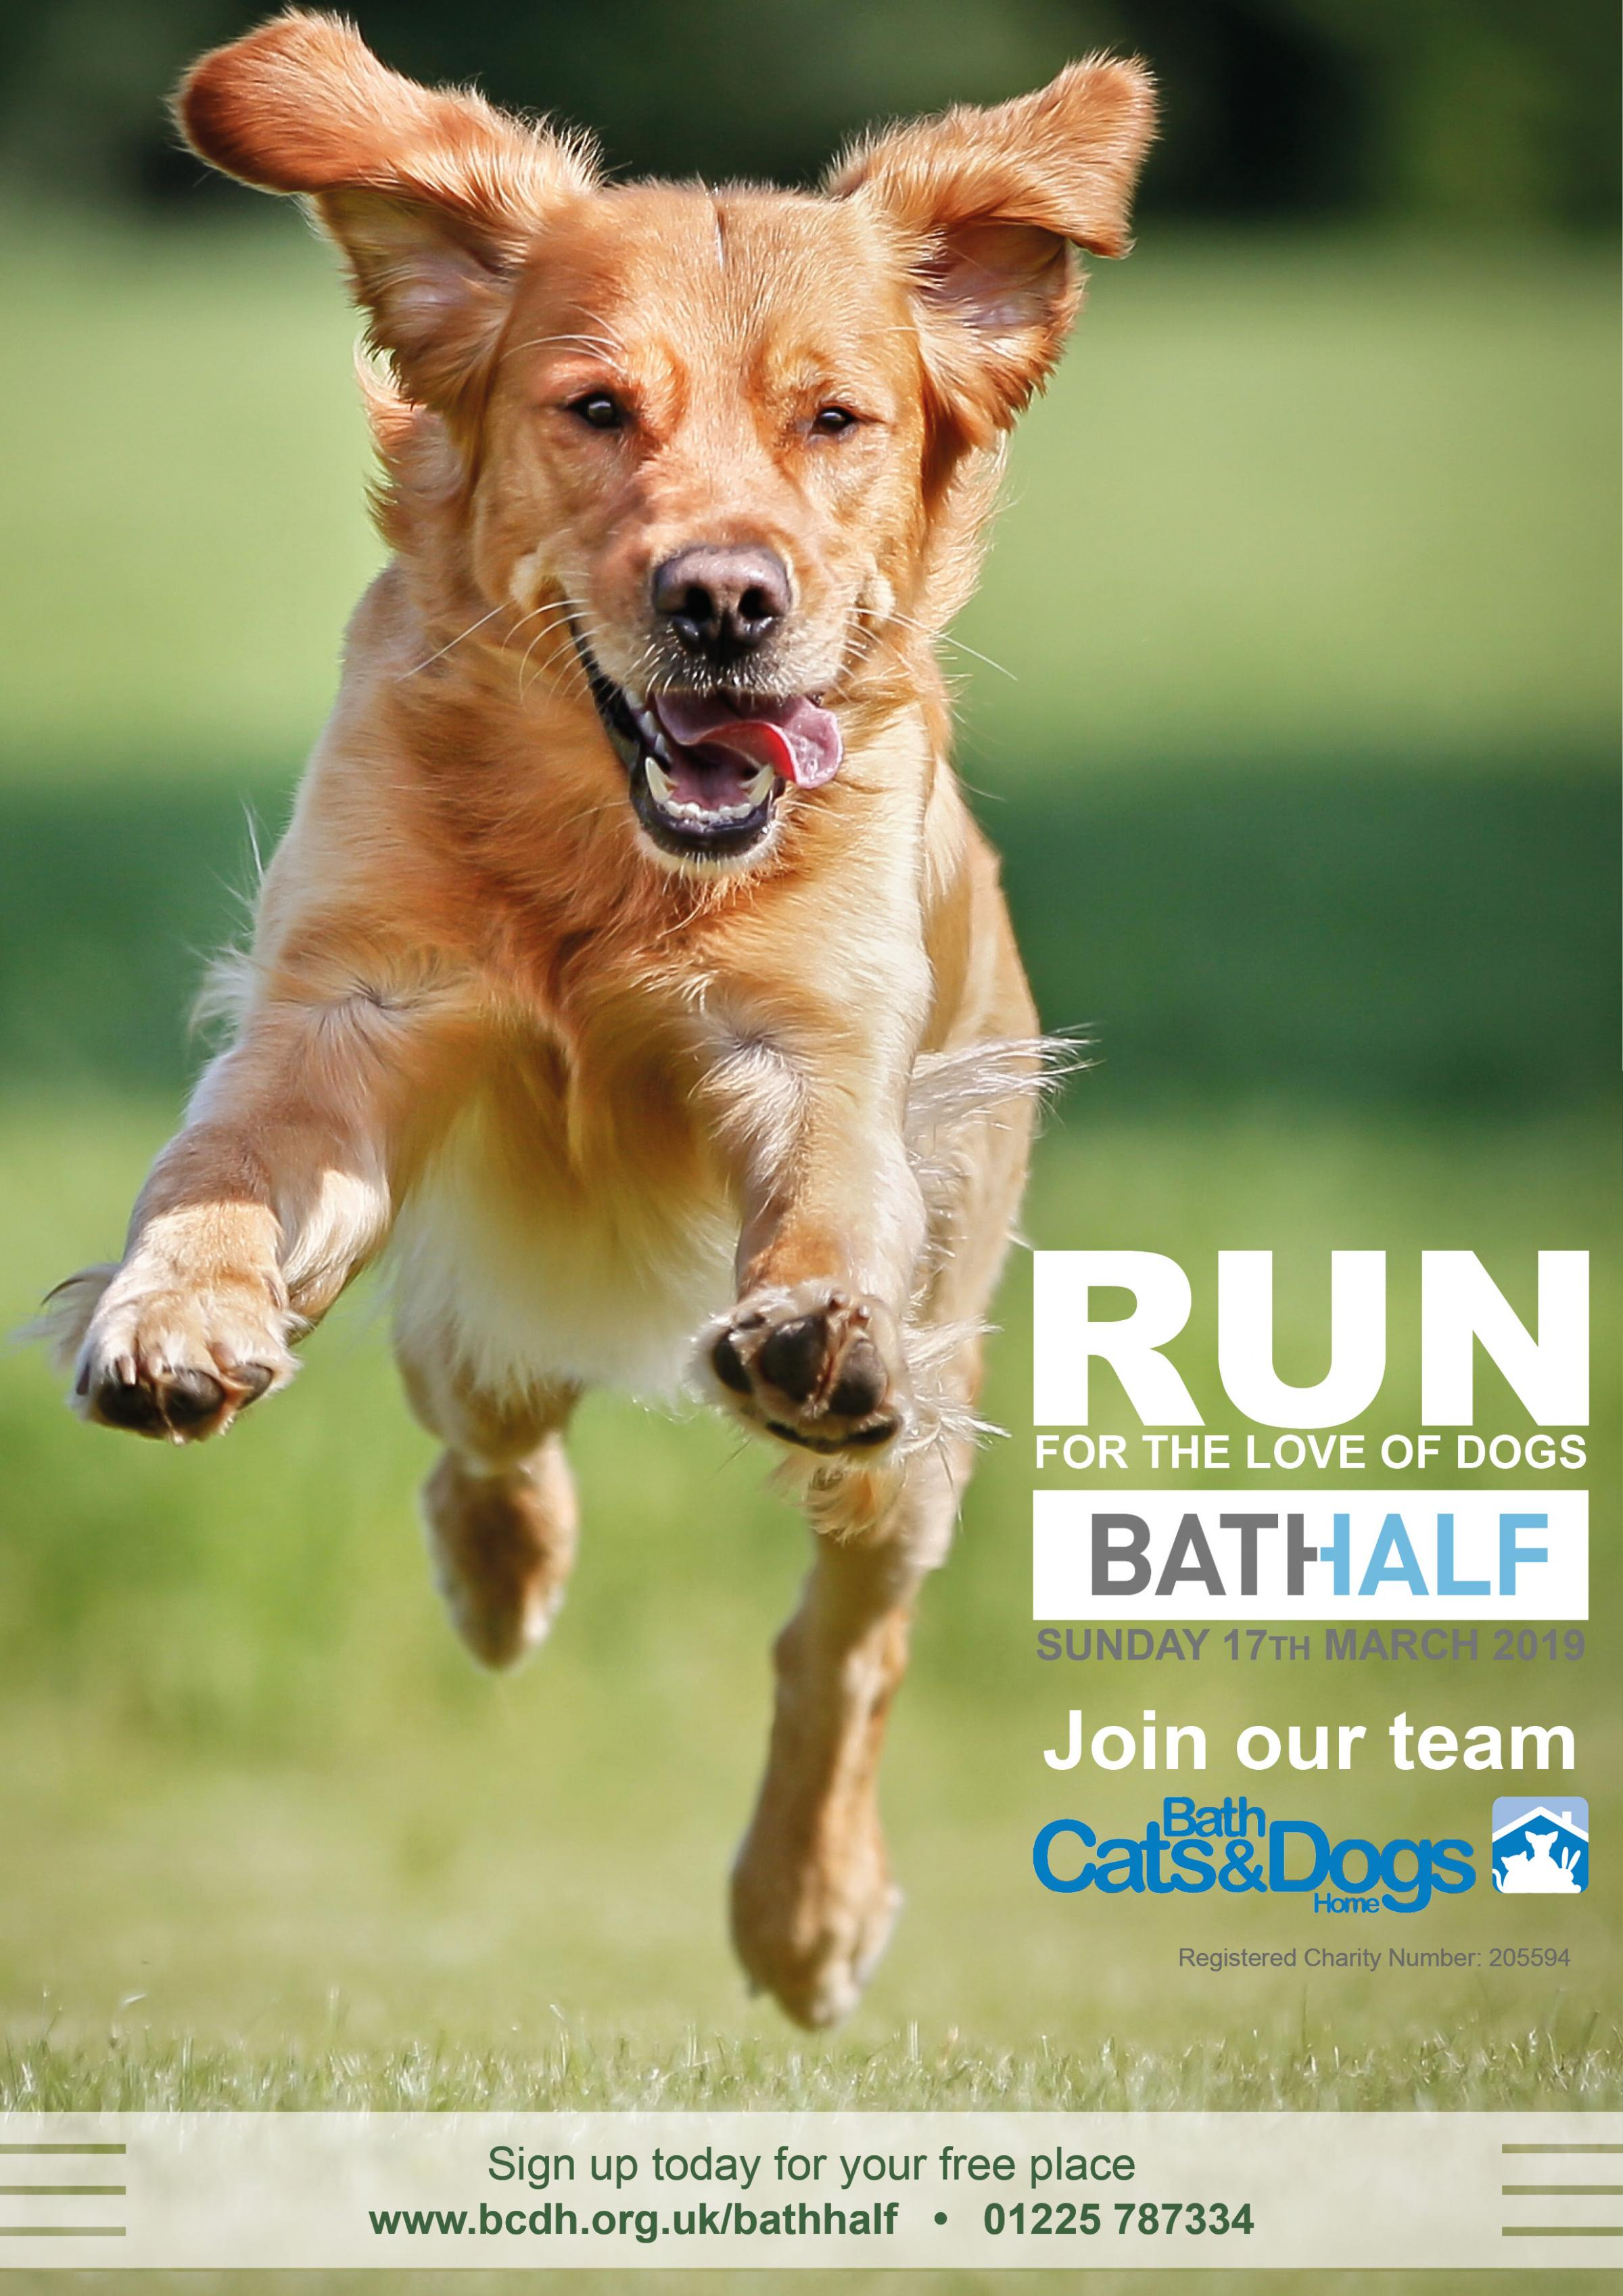 Run for BCDH in the 2019 Bath Half